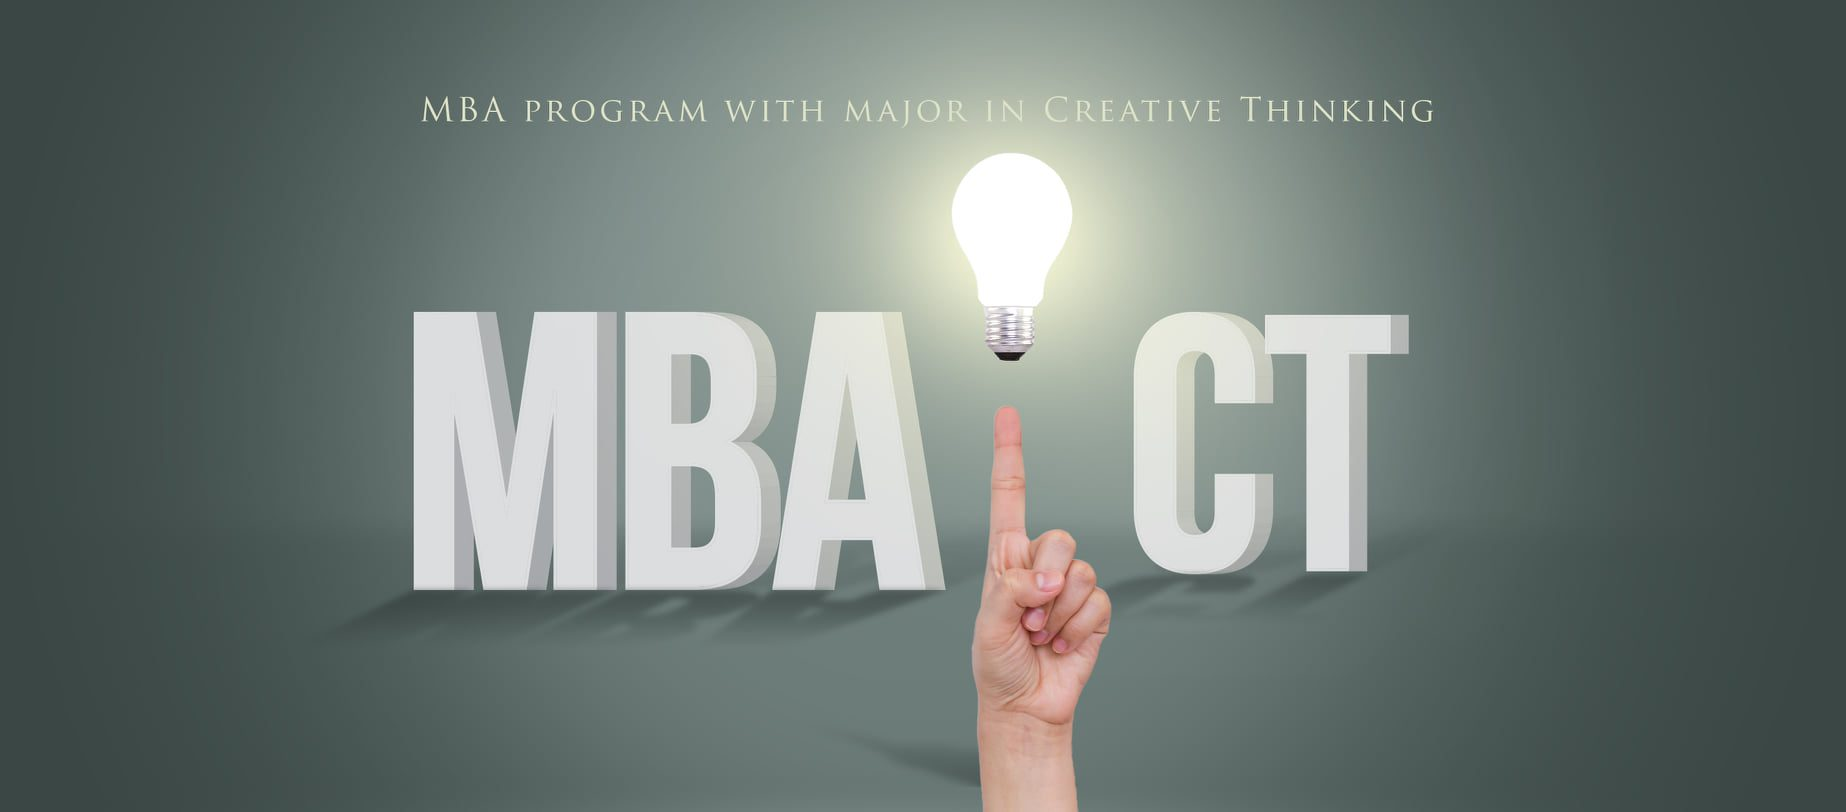 MBA Program with major in Creative Thinking (MBA-CT)